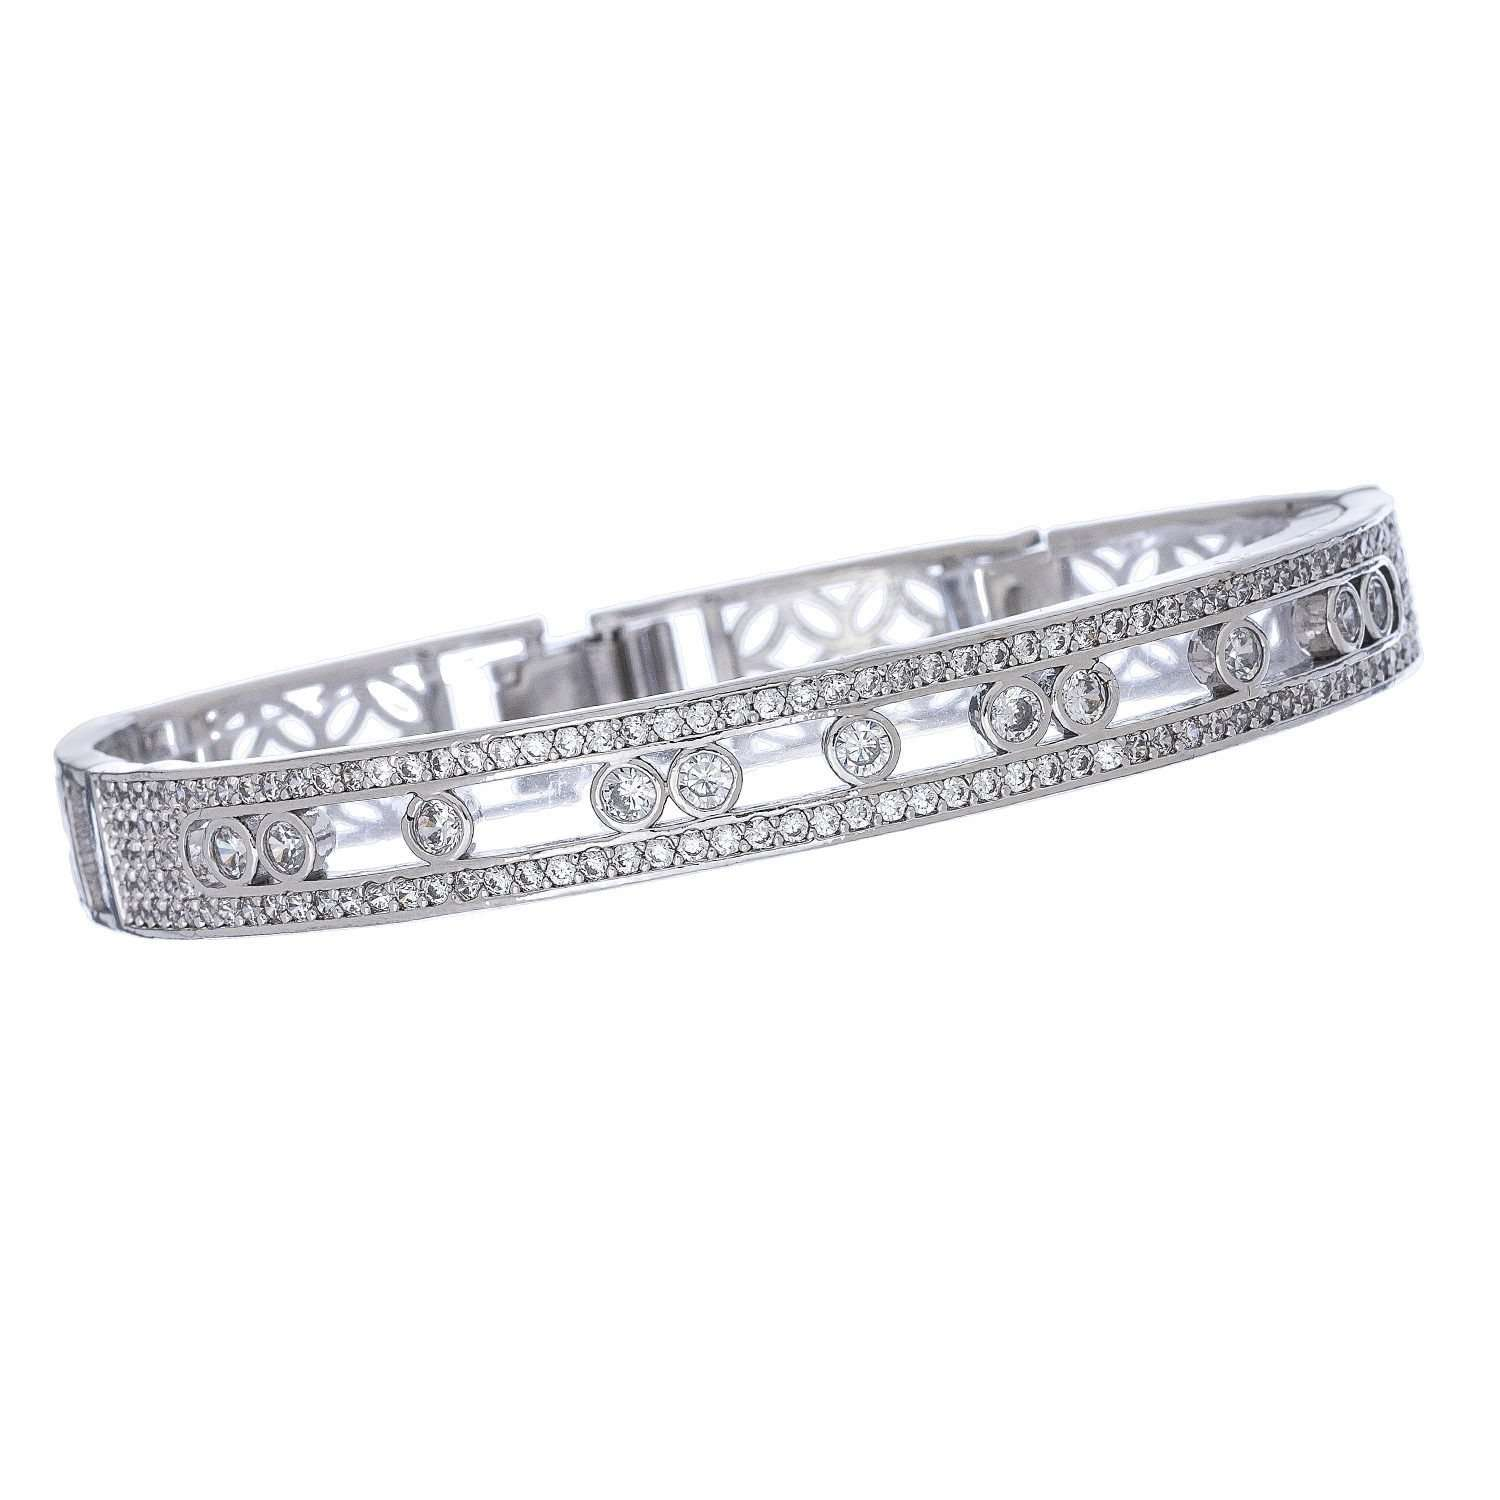 Jewelry - Exquisite Silver Bracelets - 3 Styles